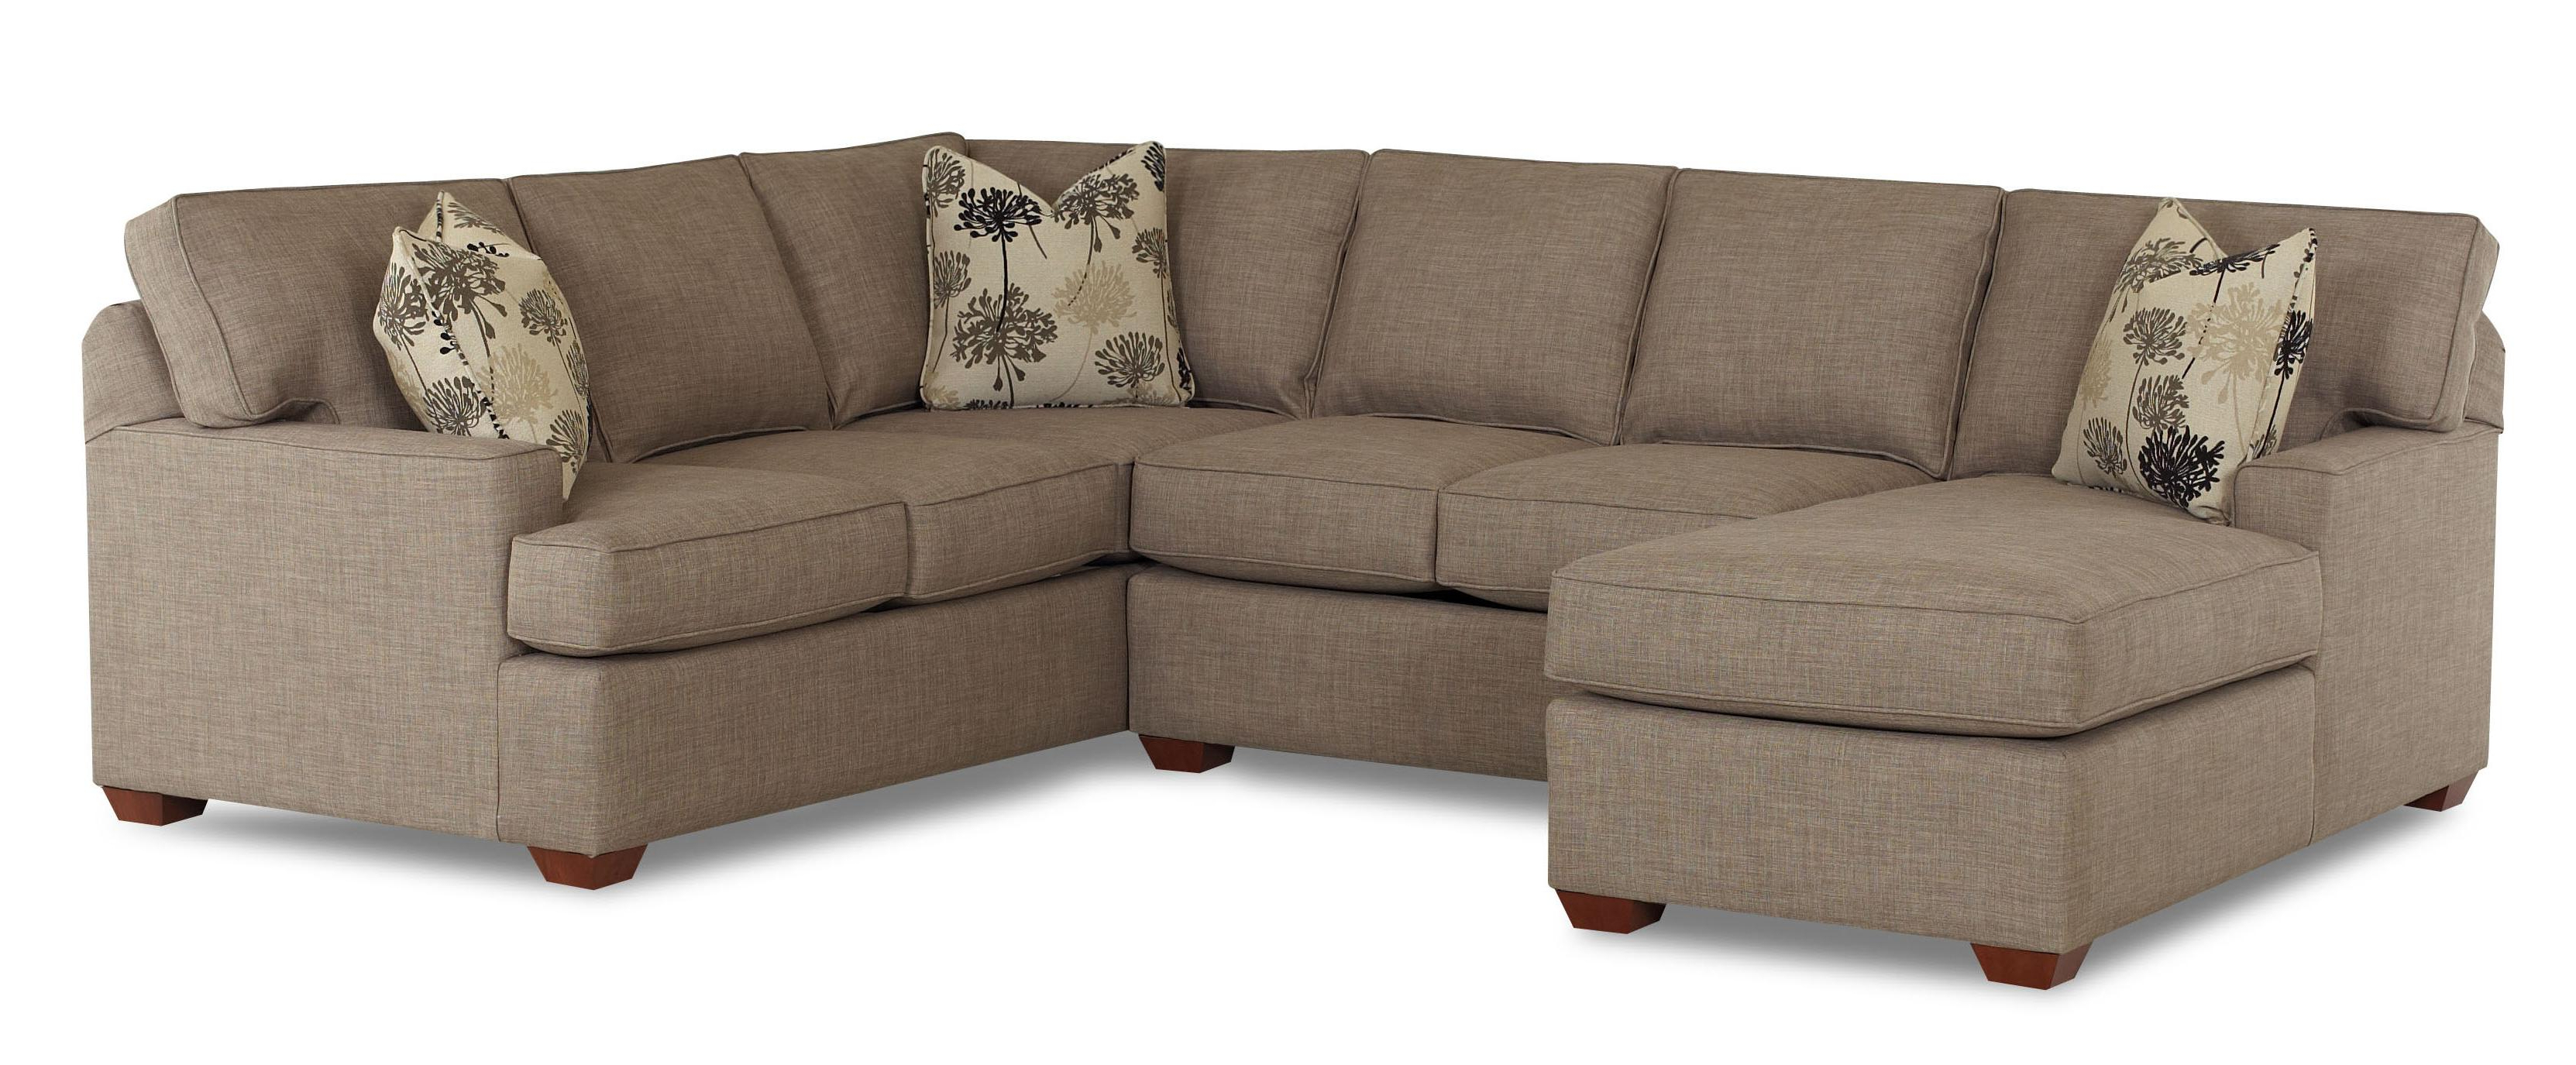 Home And Textiles Regarding 2019 Turdur 3 Piece Sectionals With Raf Loveseat (View 18 of 20)